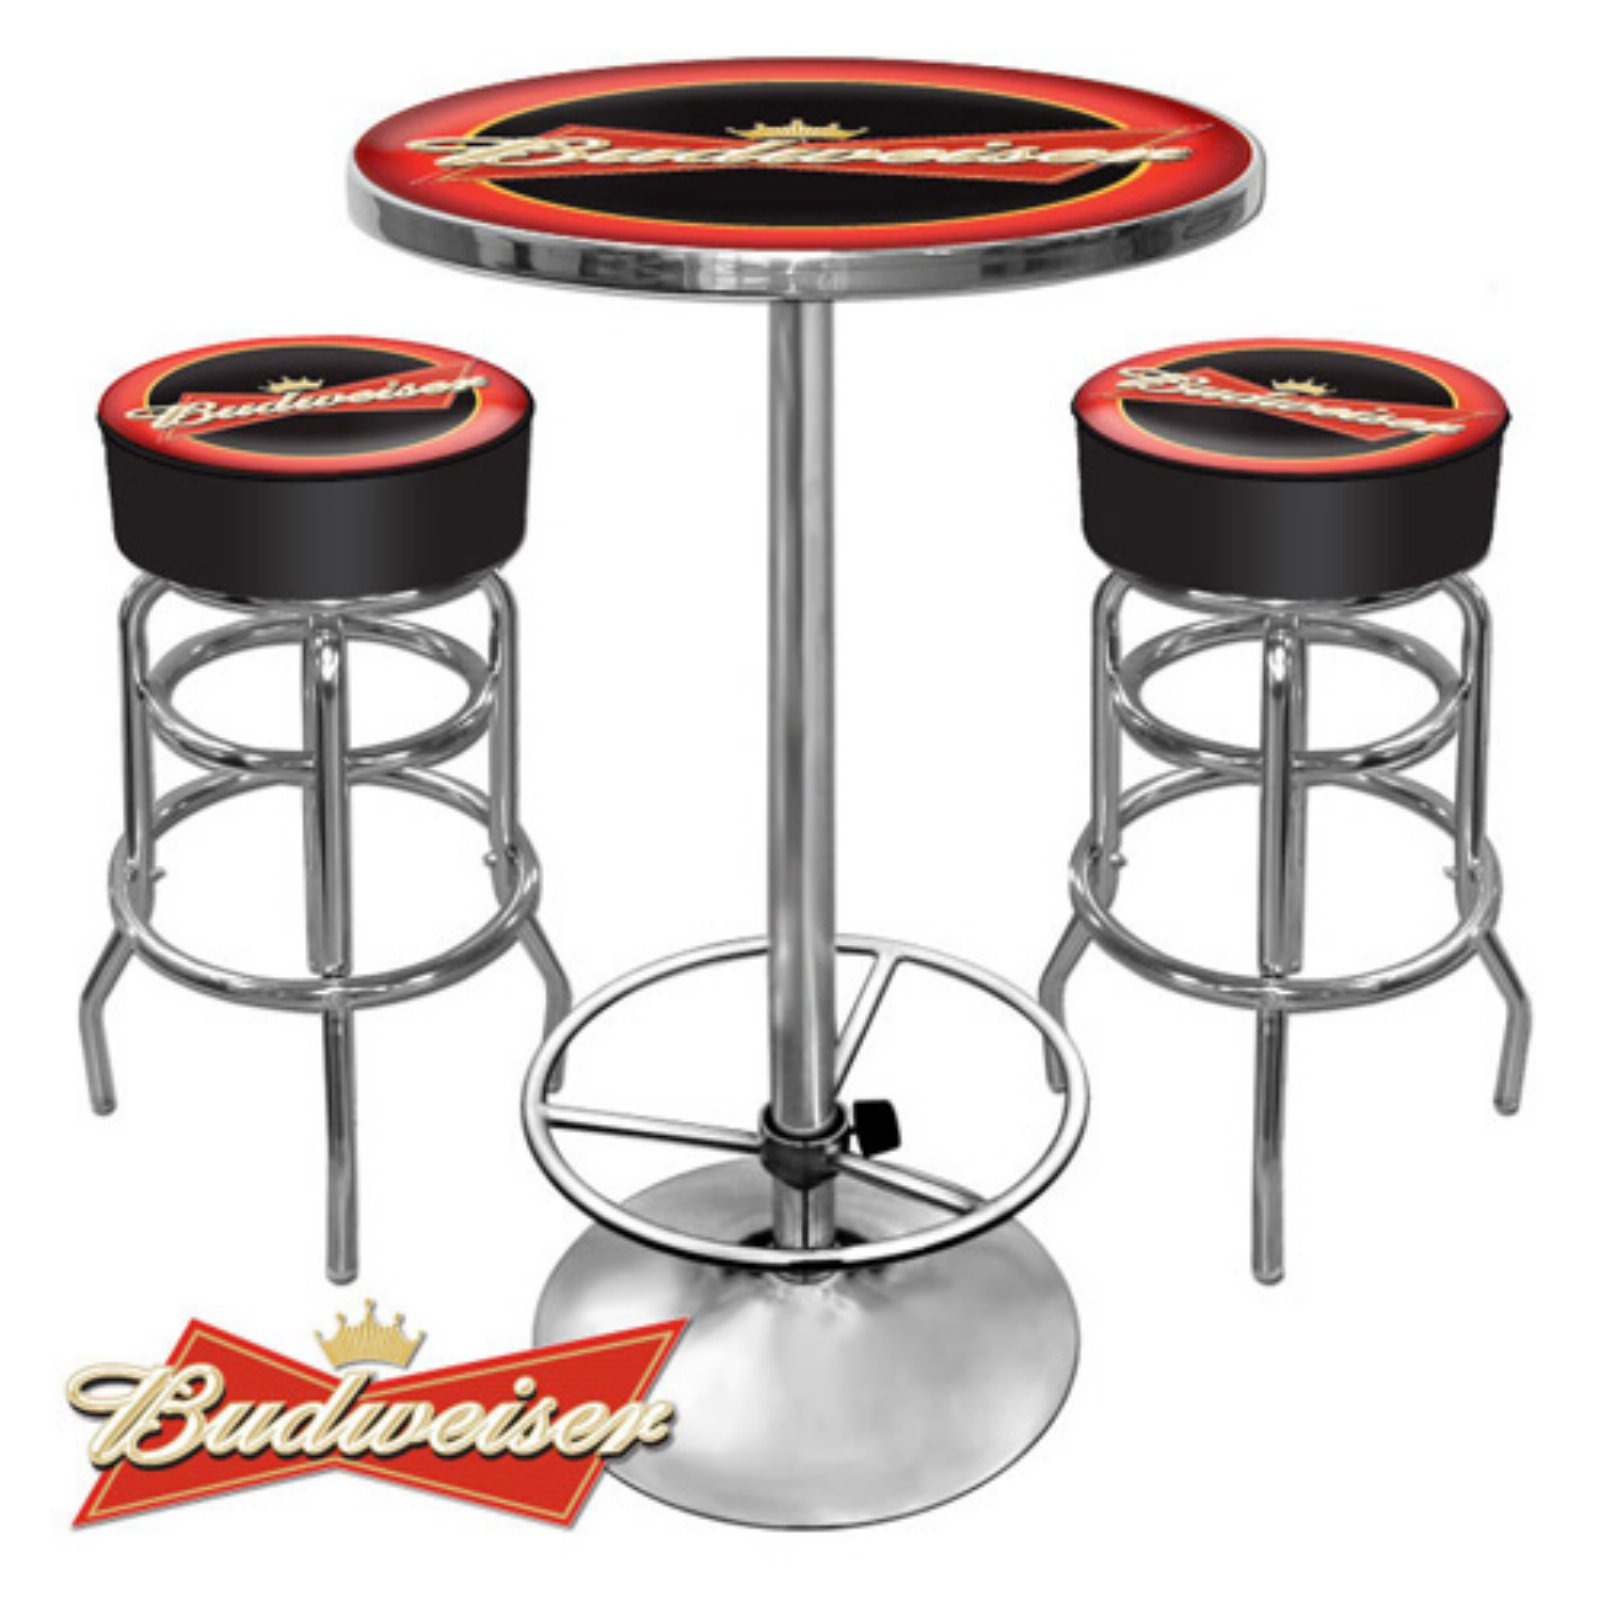 Pub Table Round Black Top with Black Leg Furniture Den Mancave Bar Black New